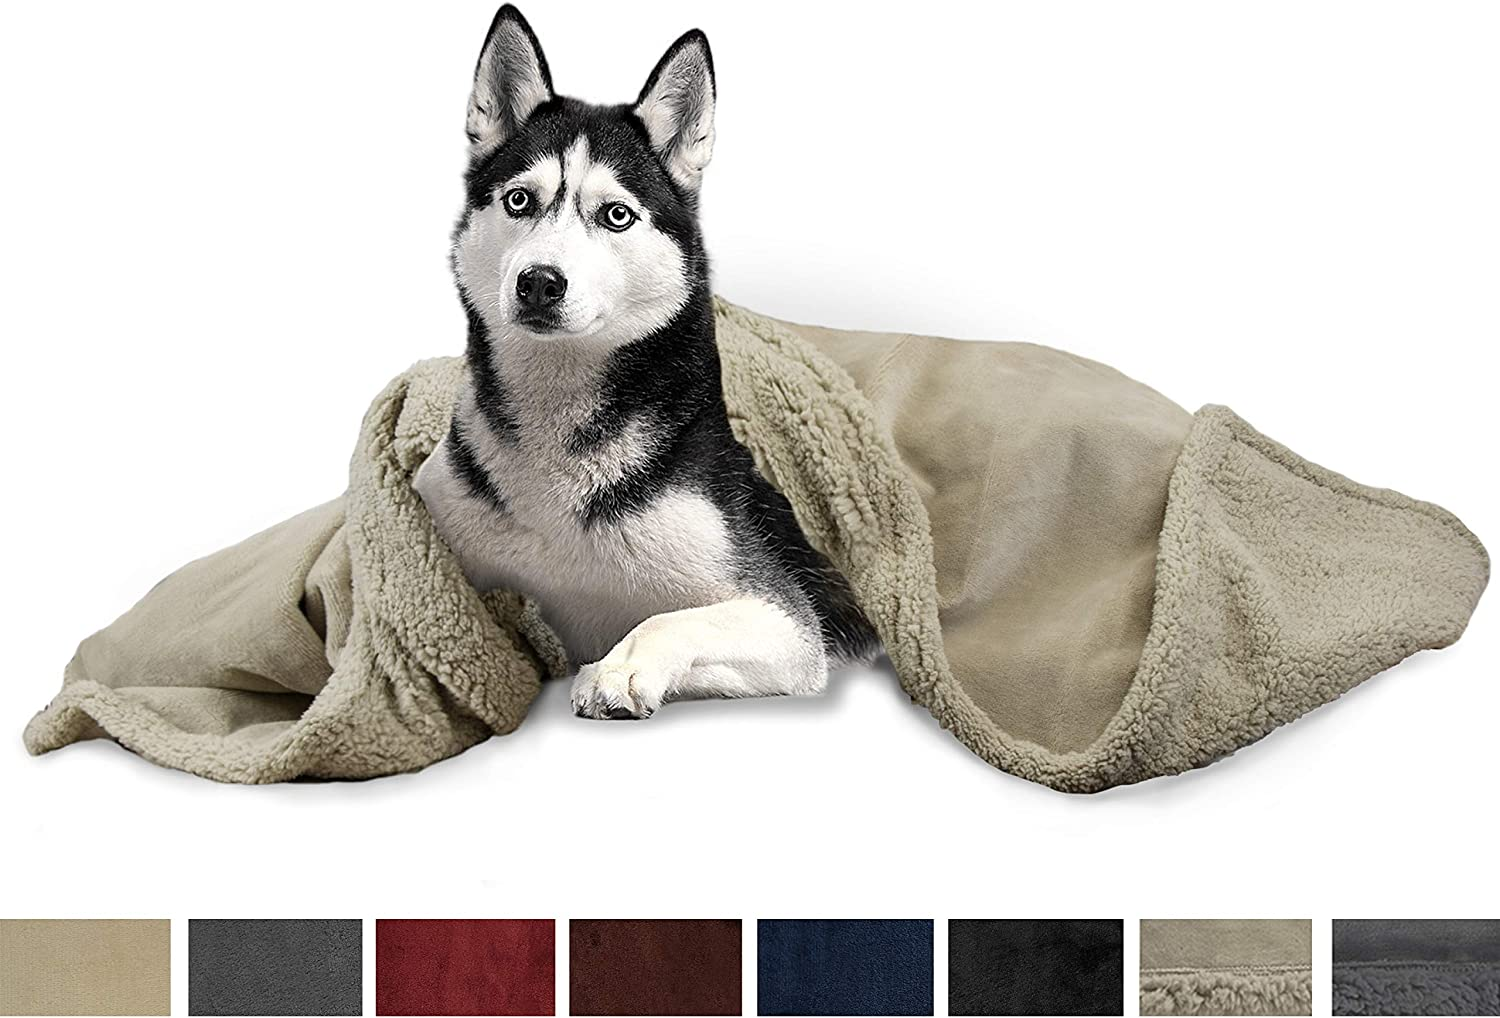 PetAmi Deluxe Dog Blanket for Large Dogs   Sherpa Fleece Pet Throw Blanket for Couch Sofa Bed   Soft Durable Reversible Furniture Predector for Medium Dog Cat Puppy  50x40 TaupeTaupe